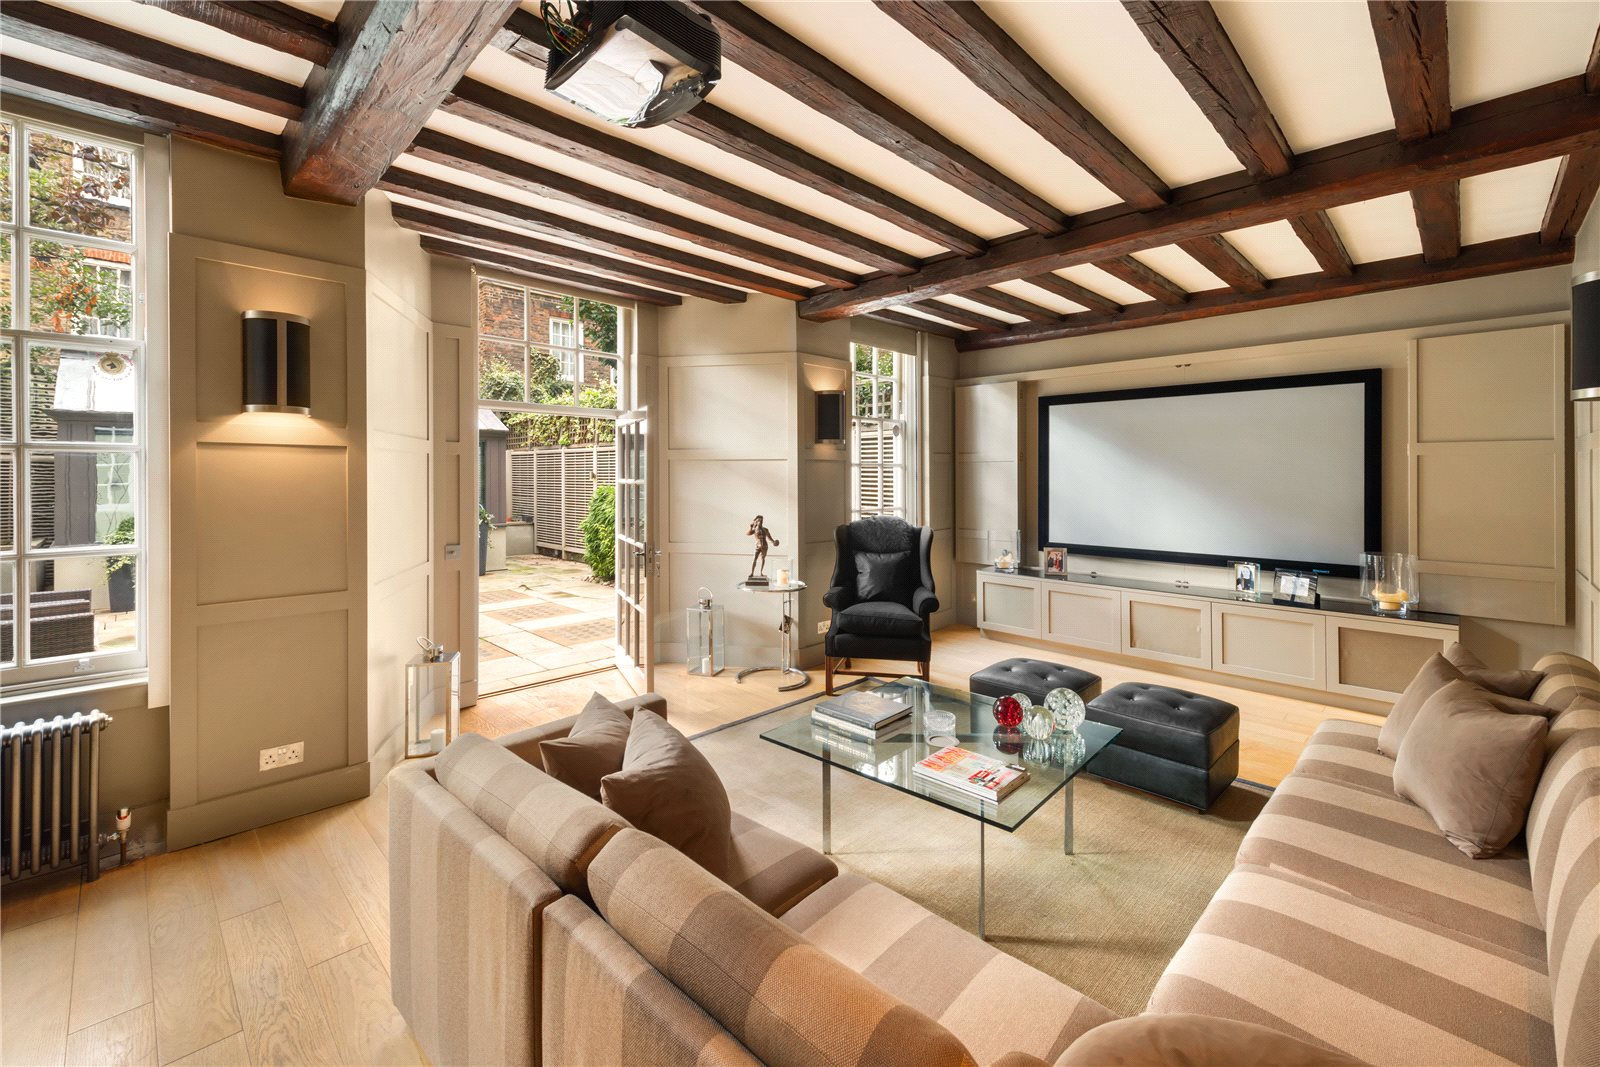 Additional photo for property listing at The Vale, Chelsea, London, SW3 Chelsea, London, Engeland